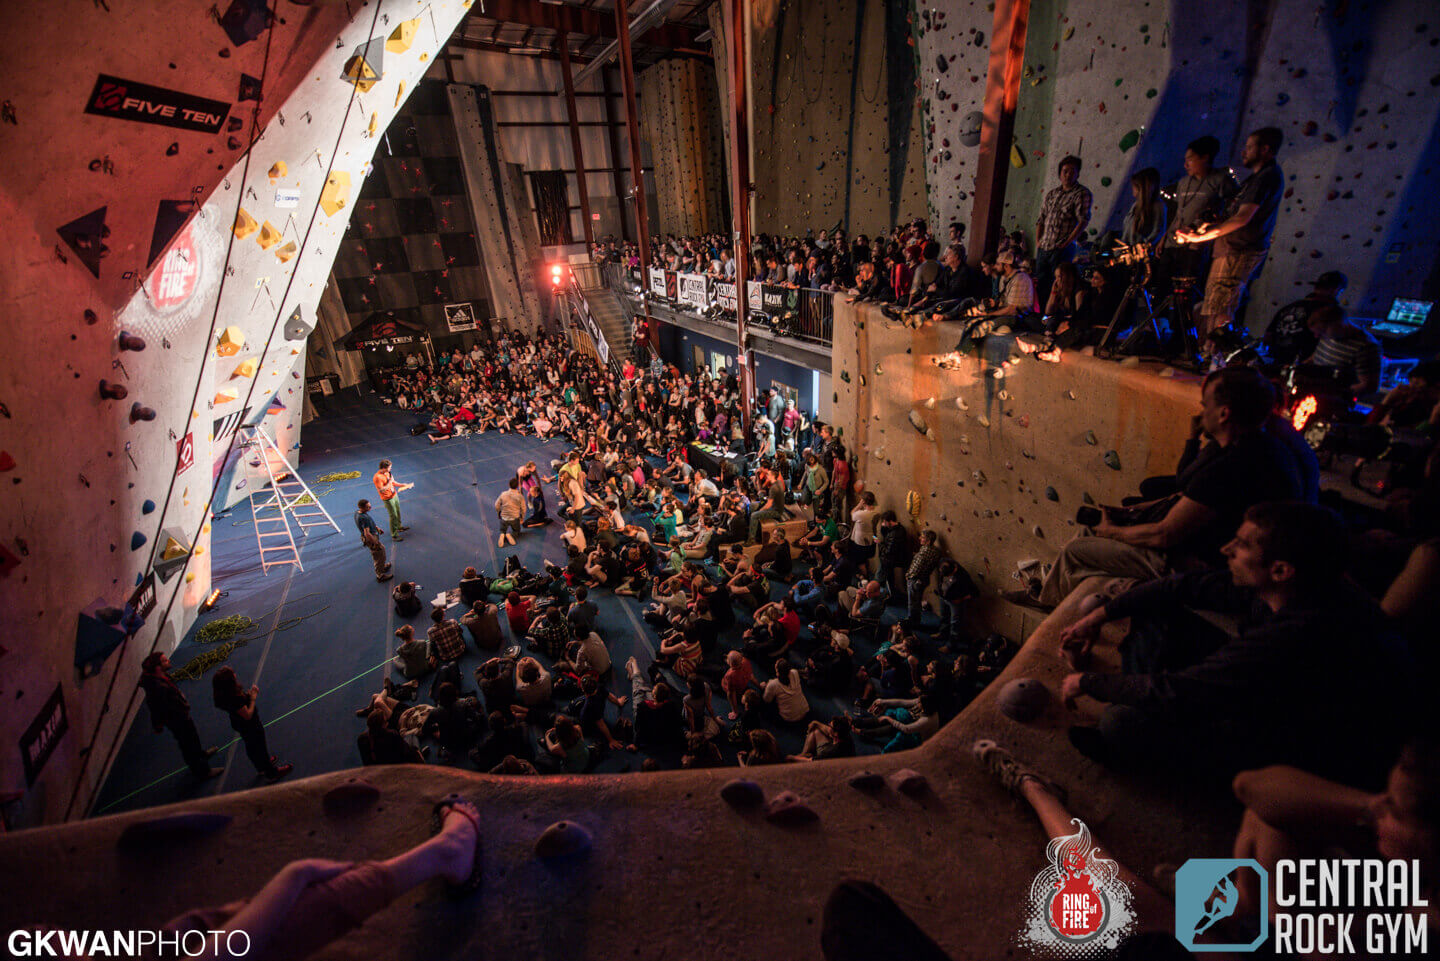 Ring of Fire competition at Central Rock Gym Watertown